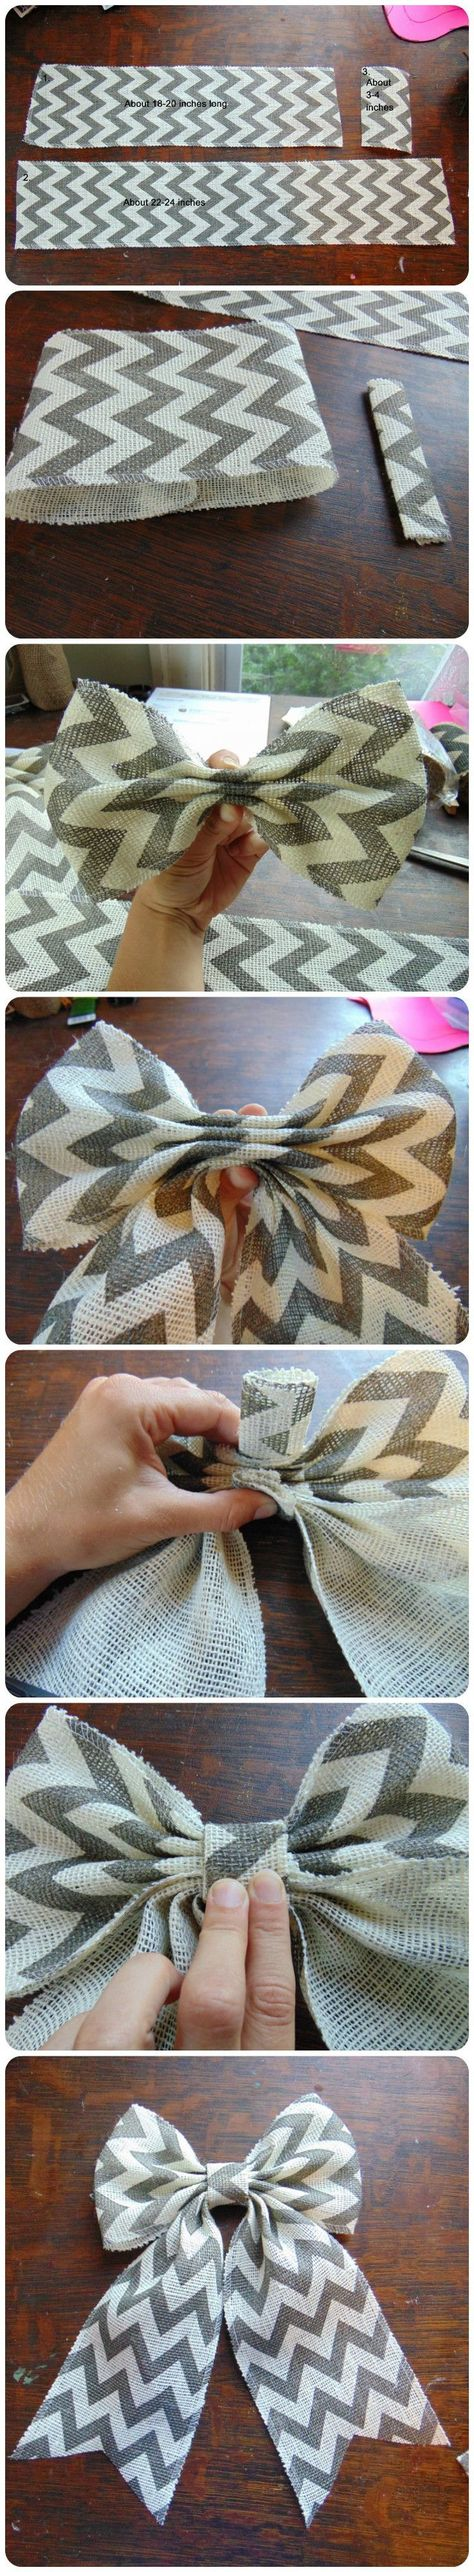 The perfect burlap bow tutorial. Found on bridge Creek Cottage - Diy for HousesFold shorter piece in halfPinned because we need help tying bowsHow to make a big burlap bowFor my green chevron burlap Burlap Projects, Burlap Crafts, Burlap Bows, Craft Projects, Burlap Wreaths, Craft Ideas, Cute Crafts, Crafts To Do, Arts And Crafts